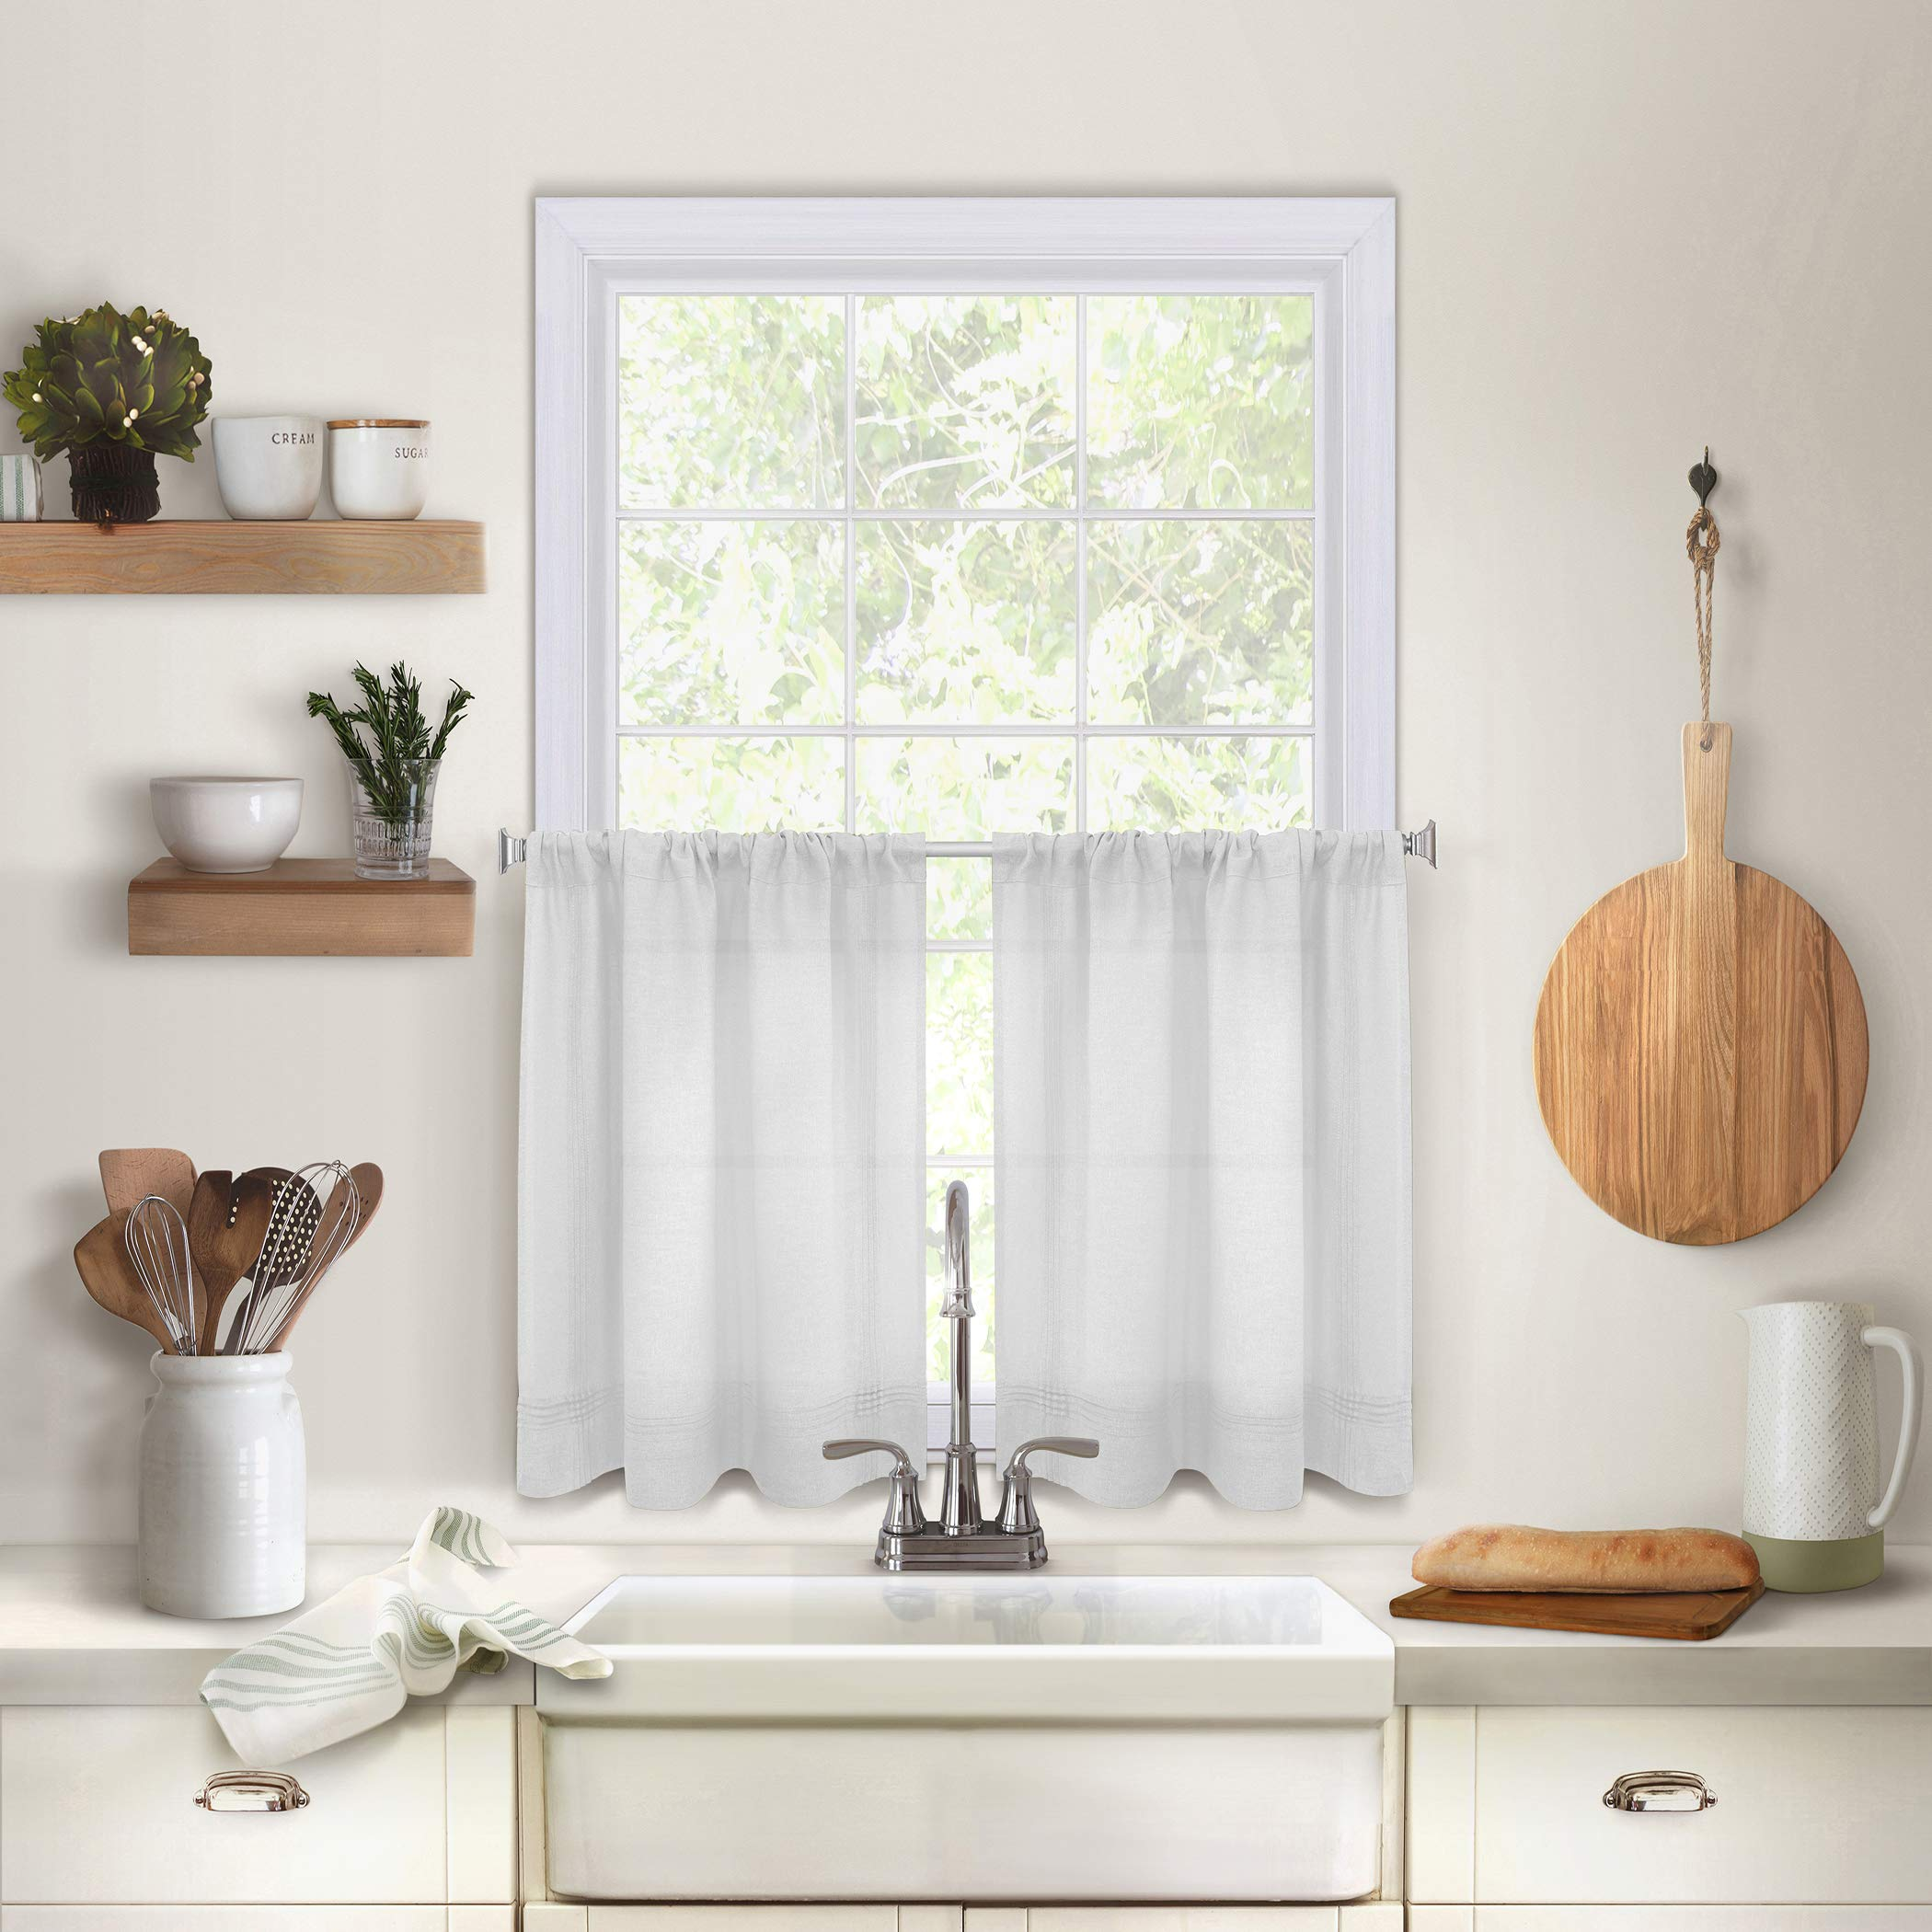 Elrene Home Fashions Pintuck Kitchen Window Tier Set of 2, 30'' x 36'', White, 2 Pieces by Elrene